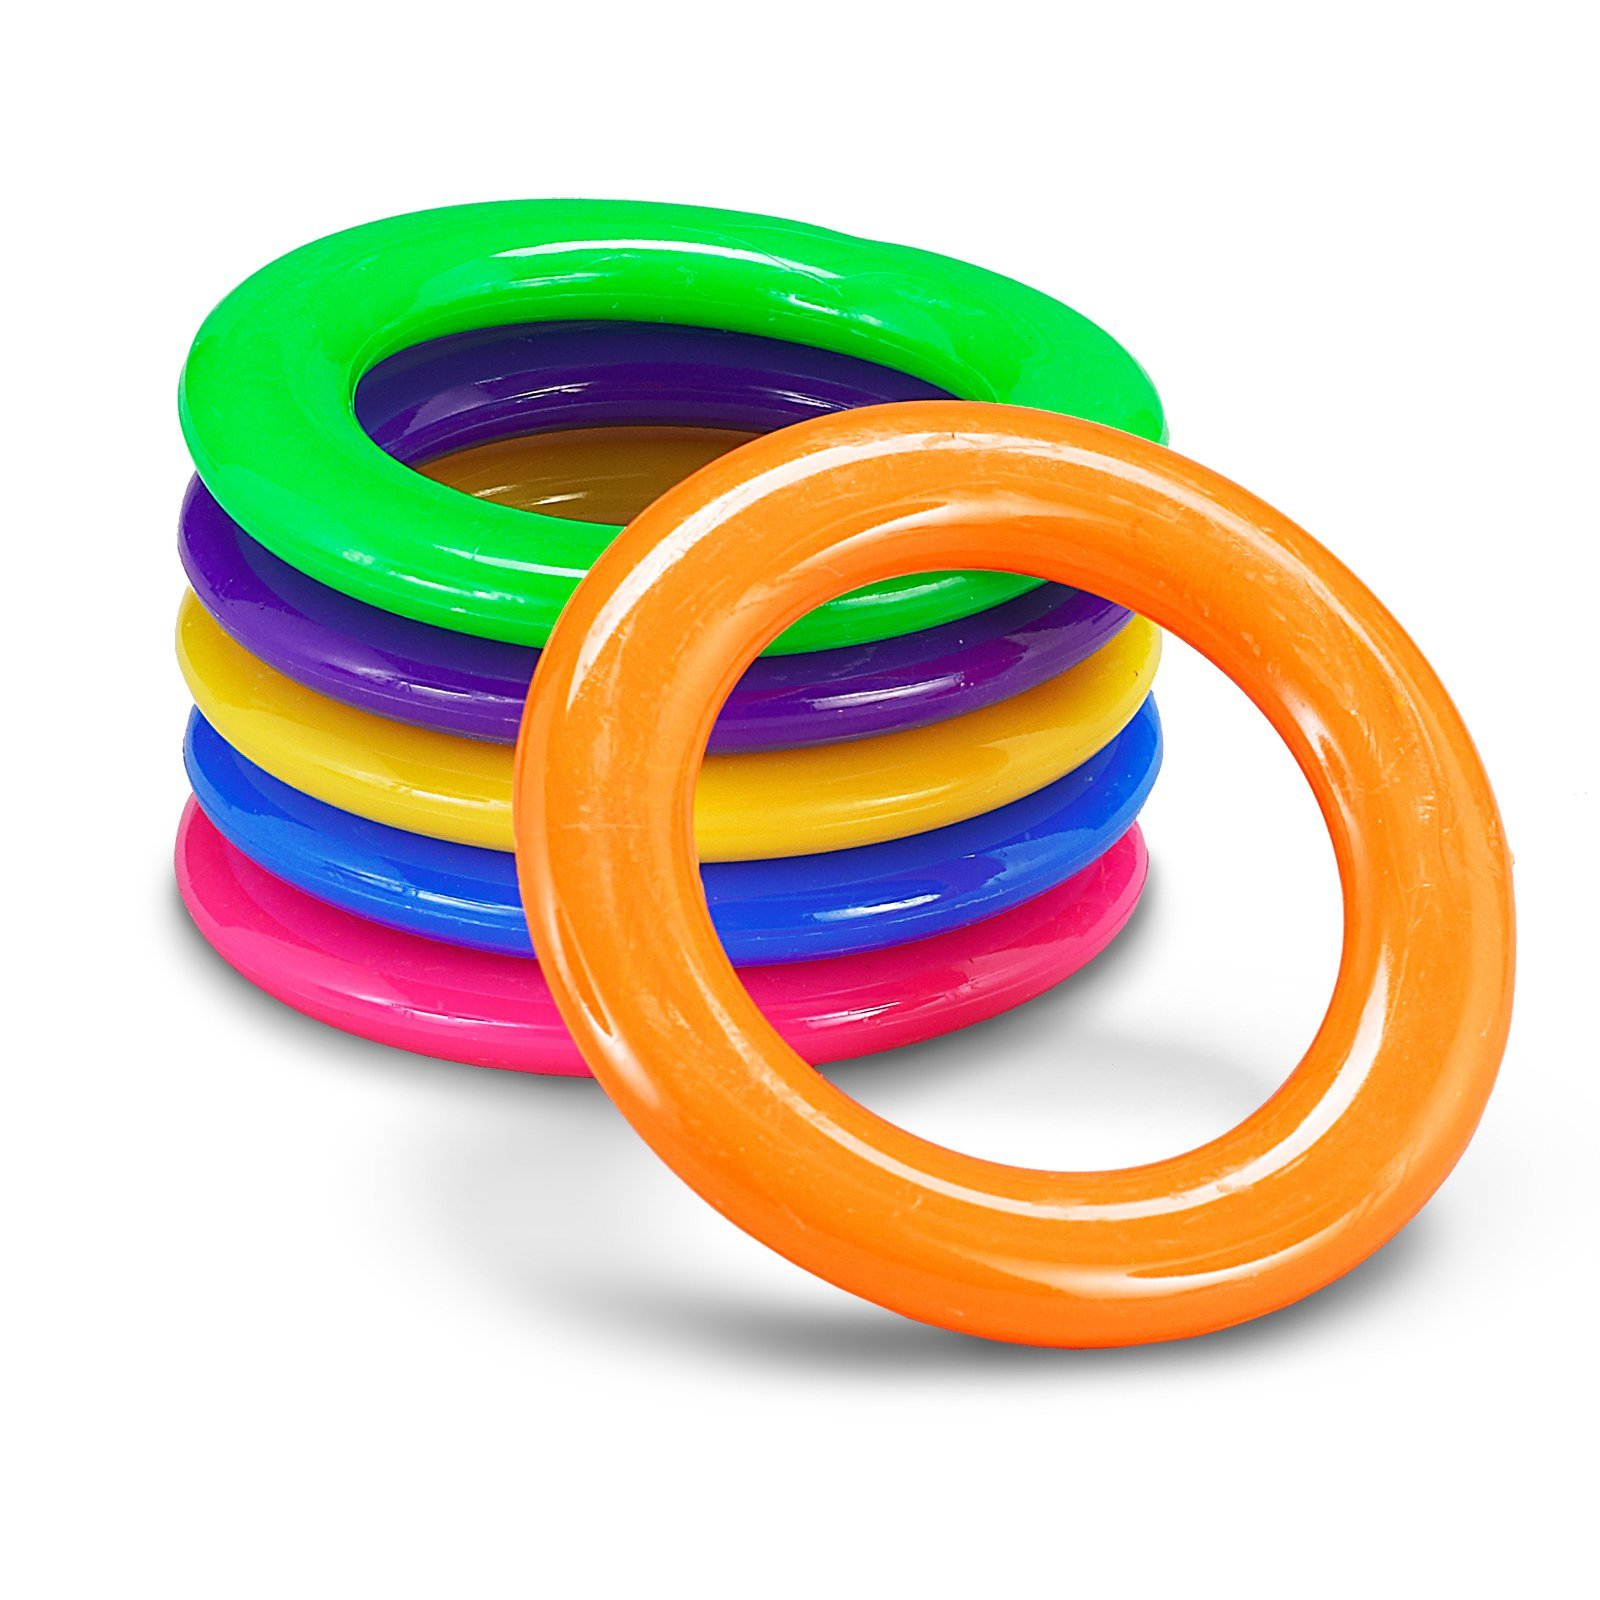 Plastic Cane Rack Rings Party Supplies (4 Dozen), Assorted Colors